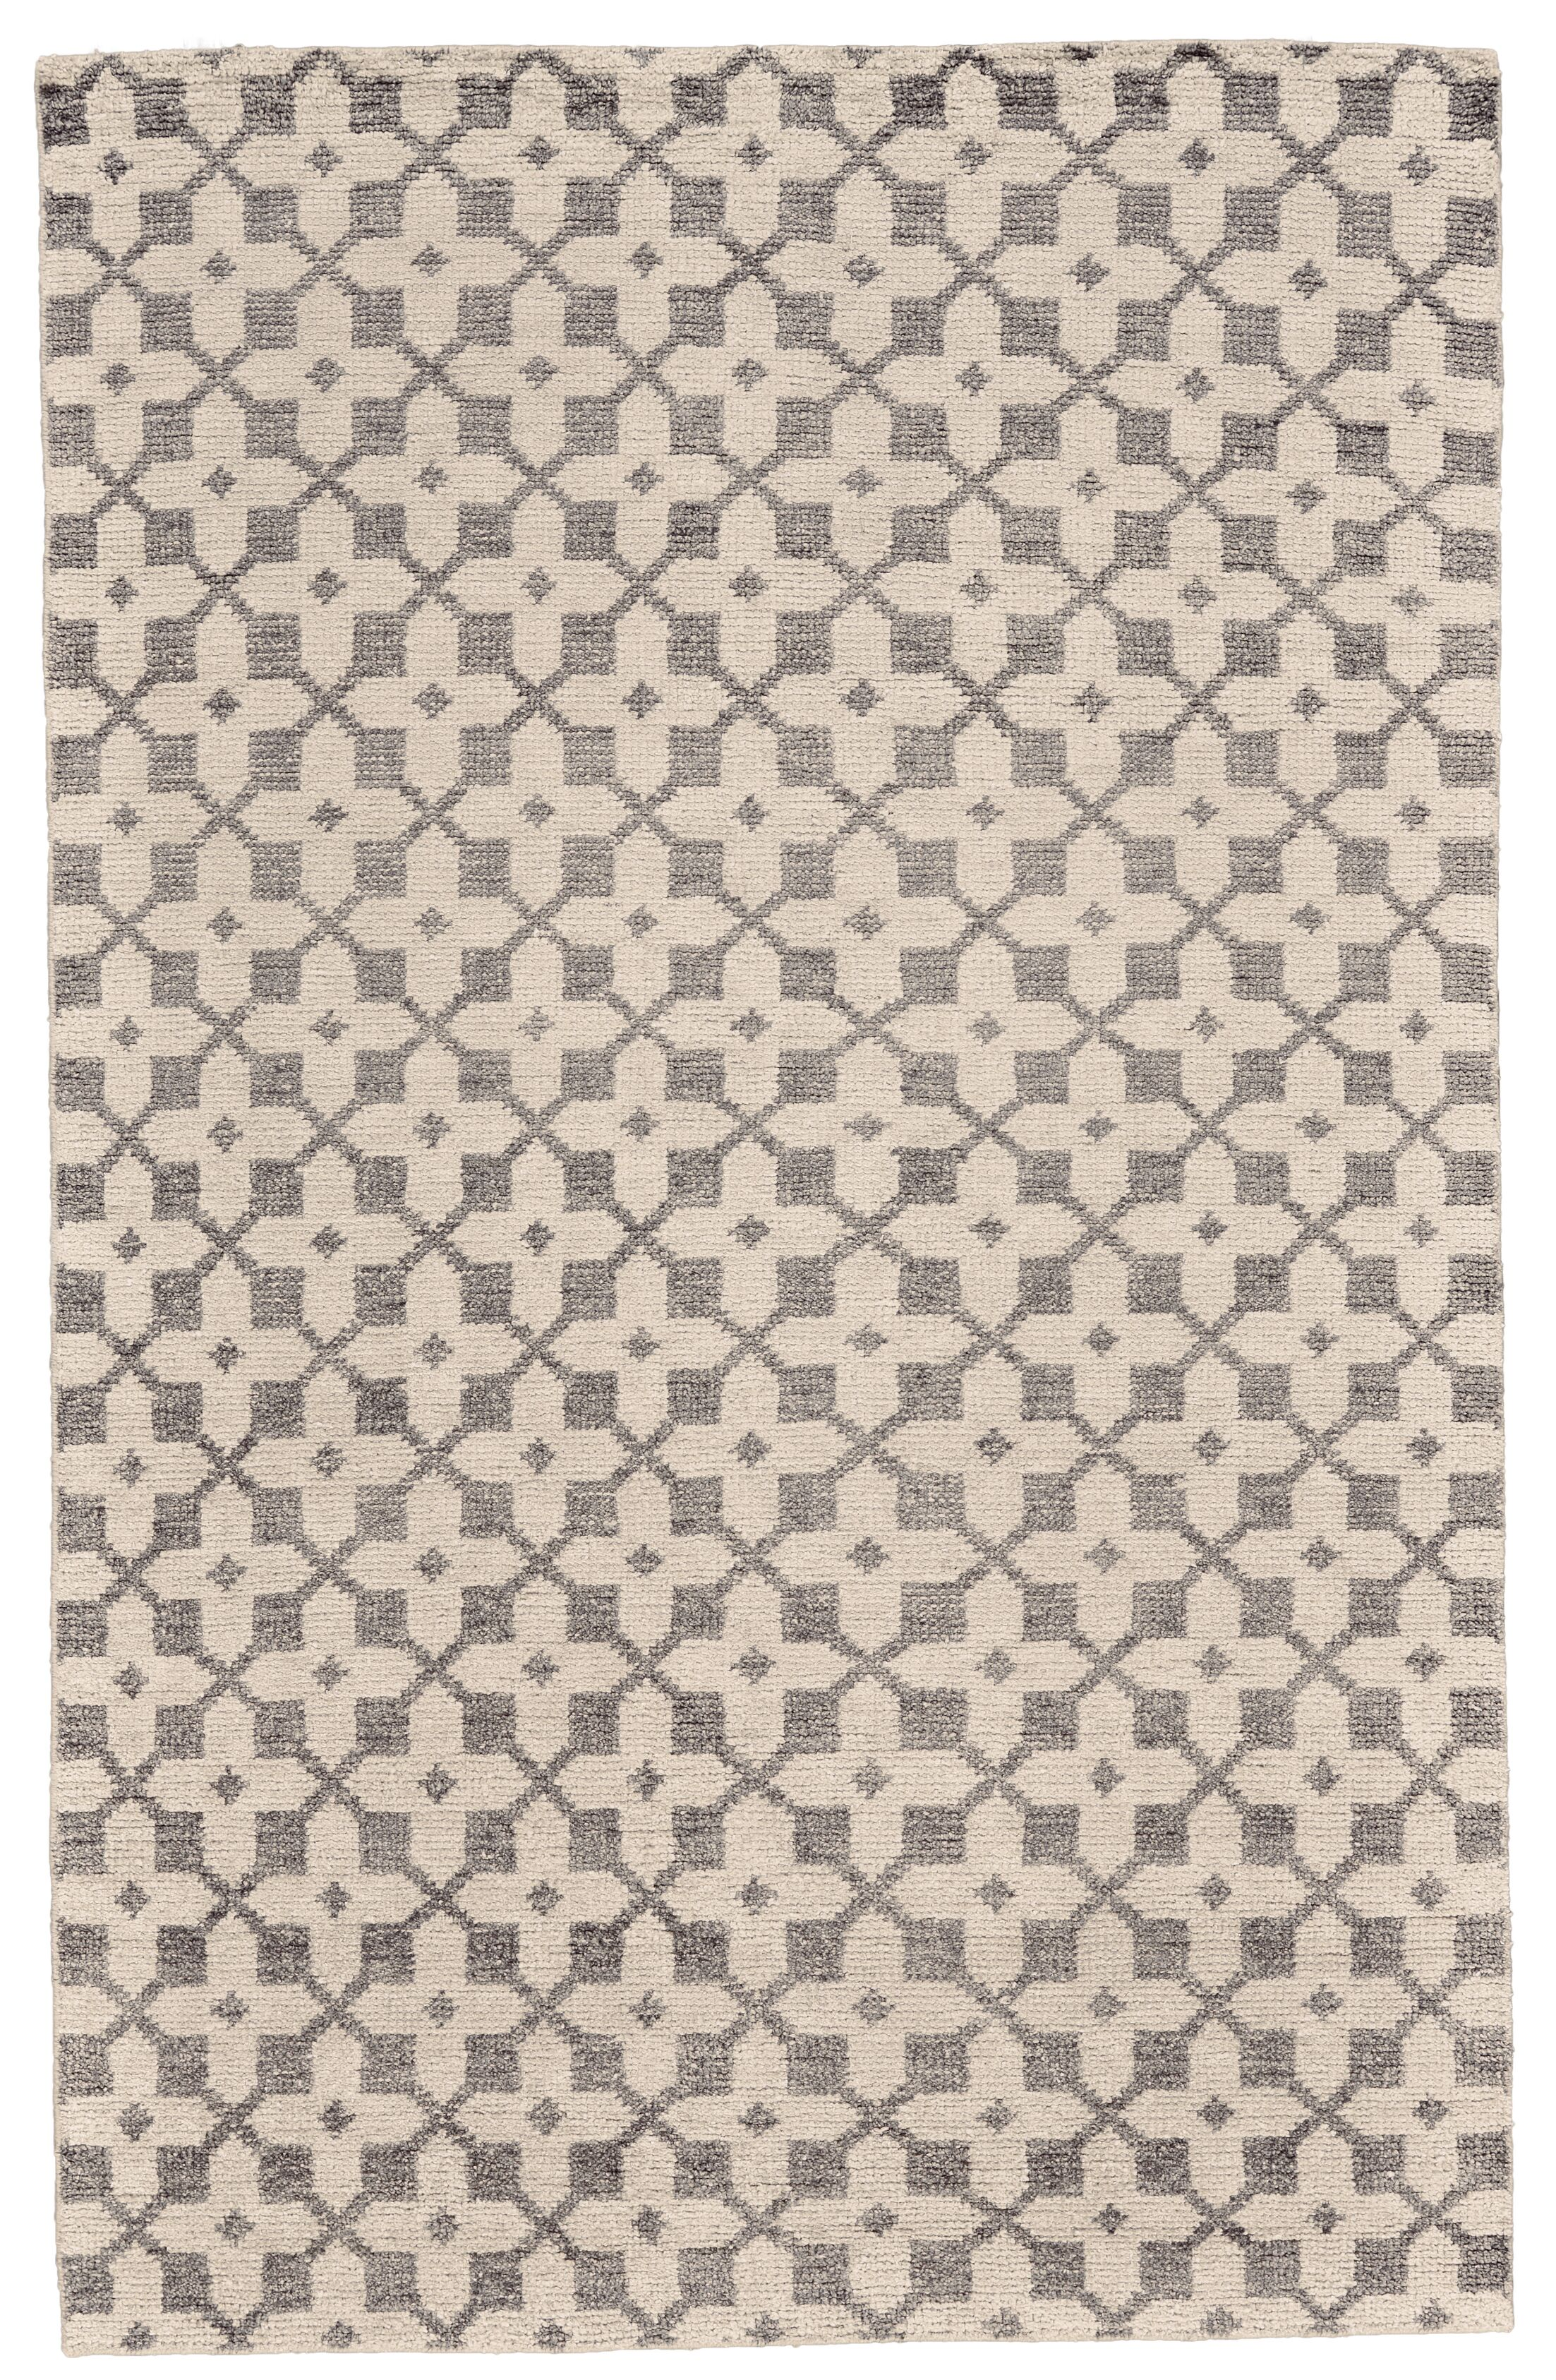 Halloran Hand-Knotted Ivory/Gray Area Rug Rug Size: Rectangle 4' x 6'